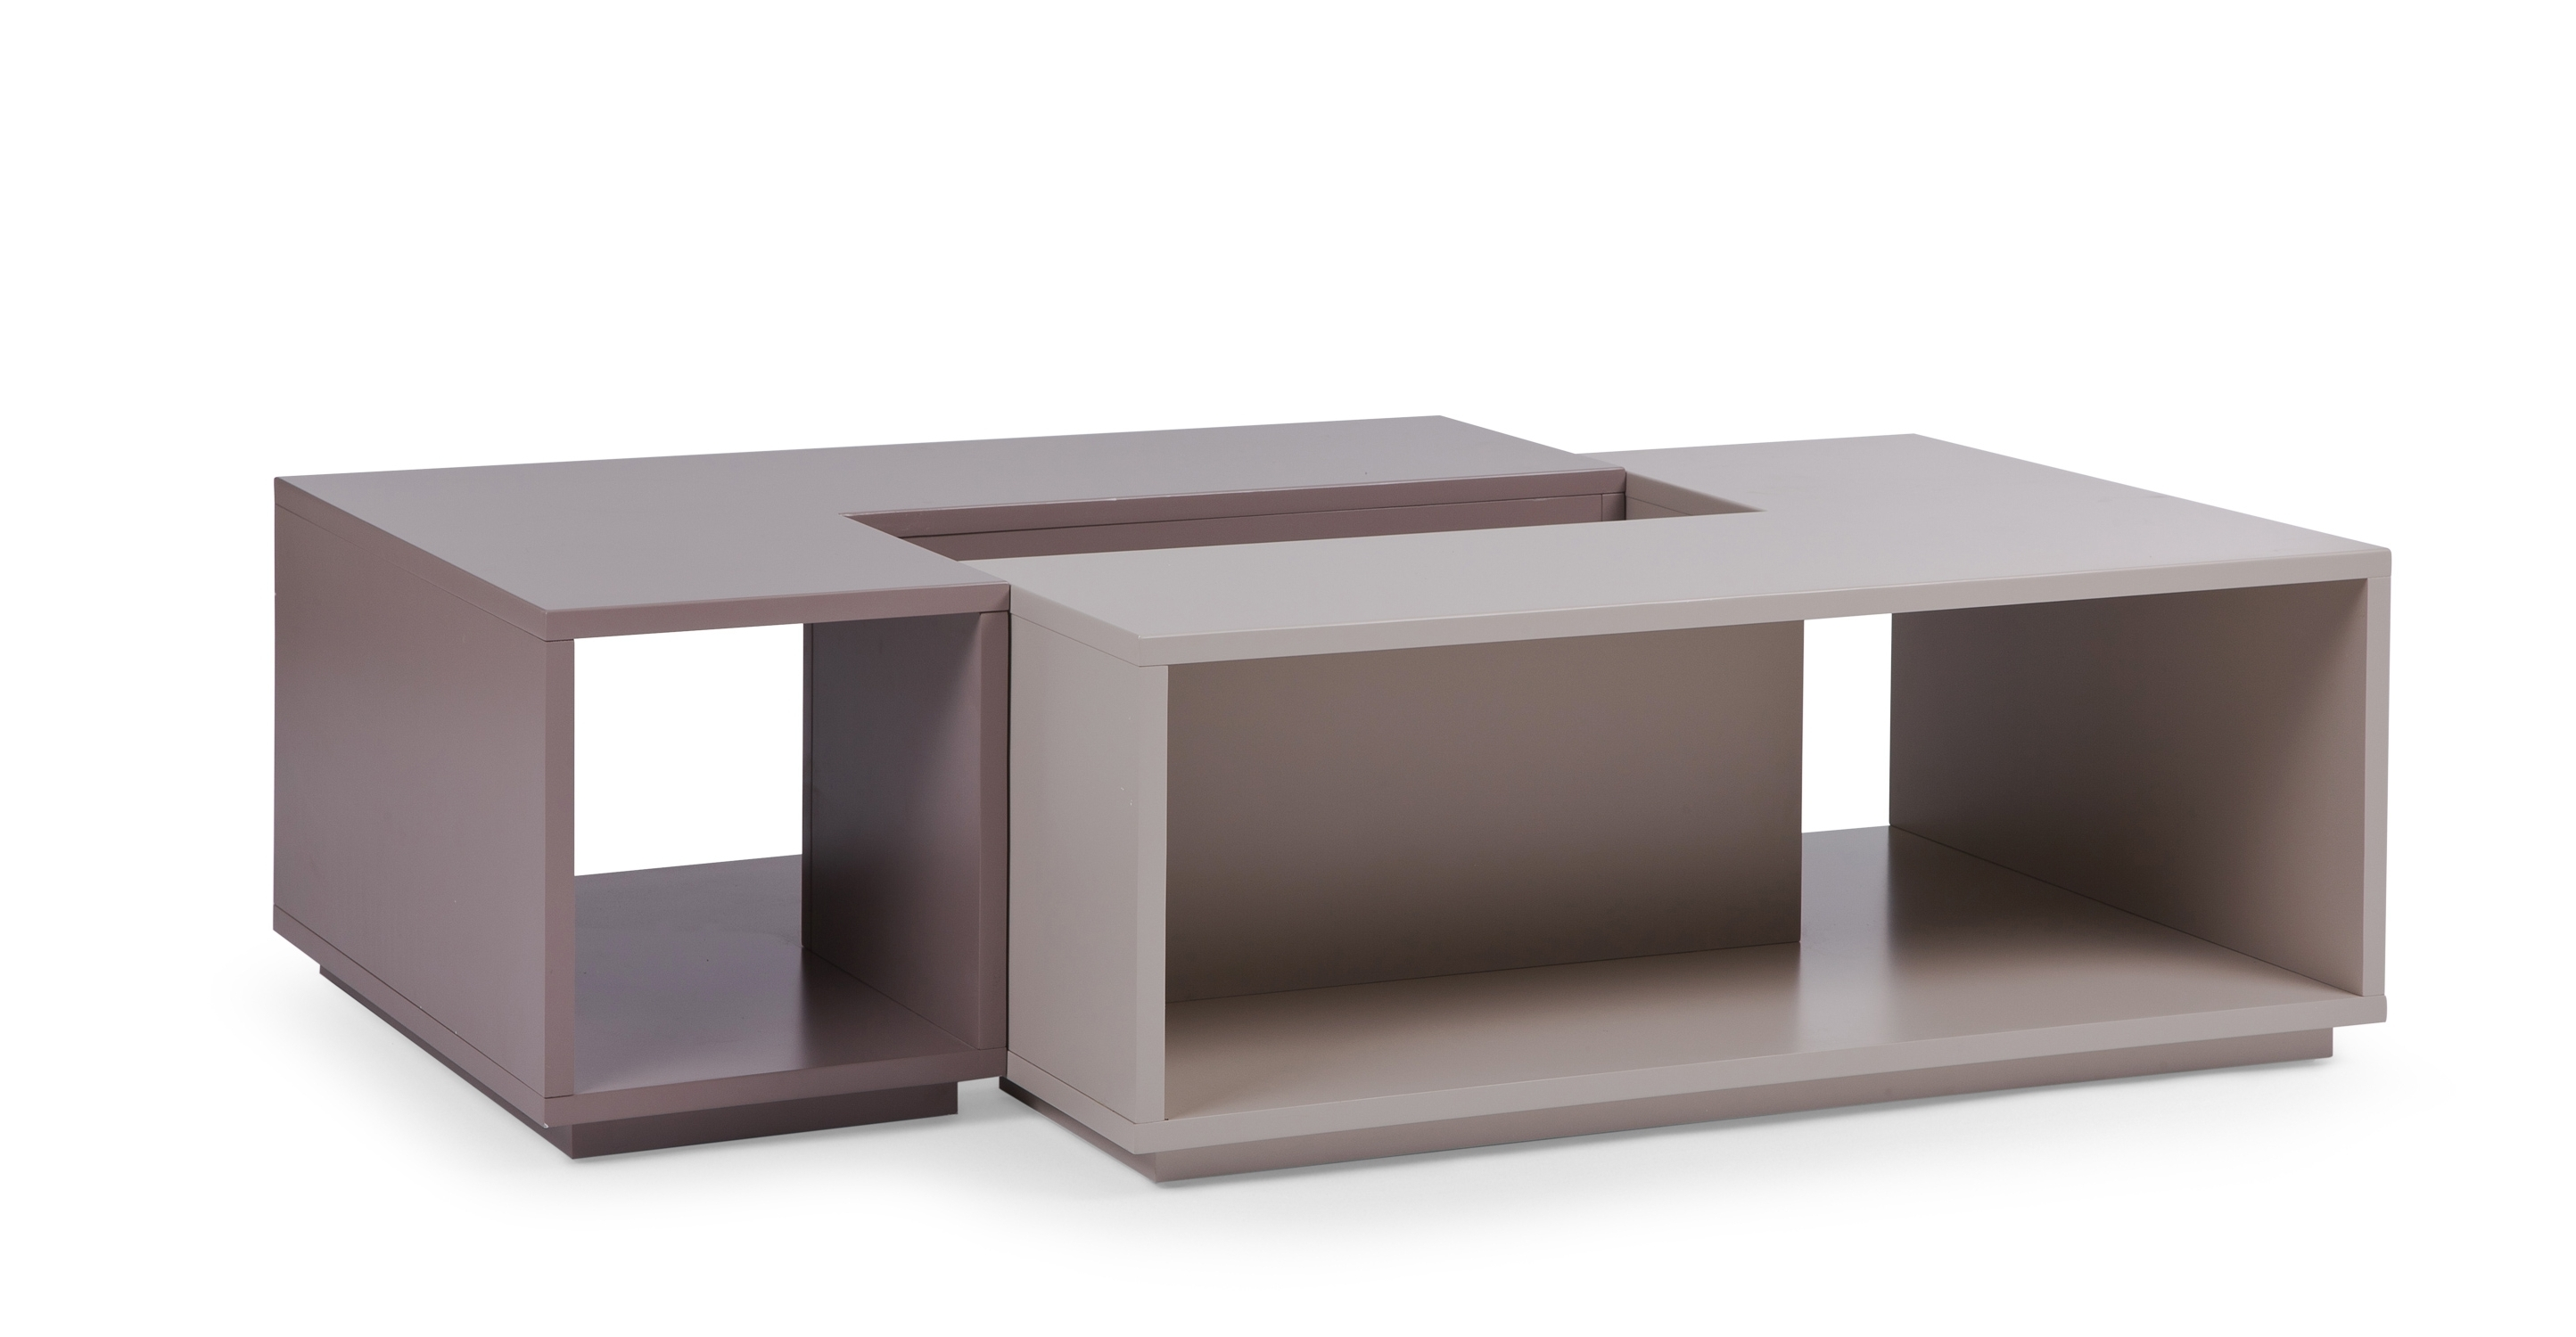 Well Liked Modular Coffee Tables With Regard To Fabulous Modular Coffee Table With Modular Coffee Table Design  (View 20 of 20)